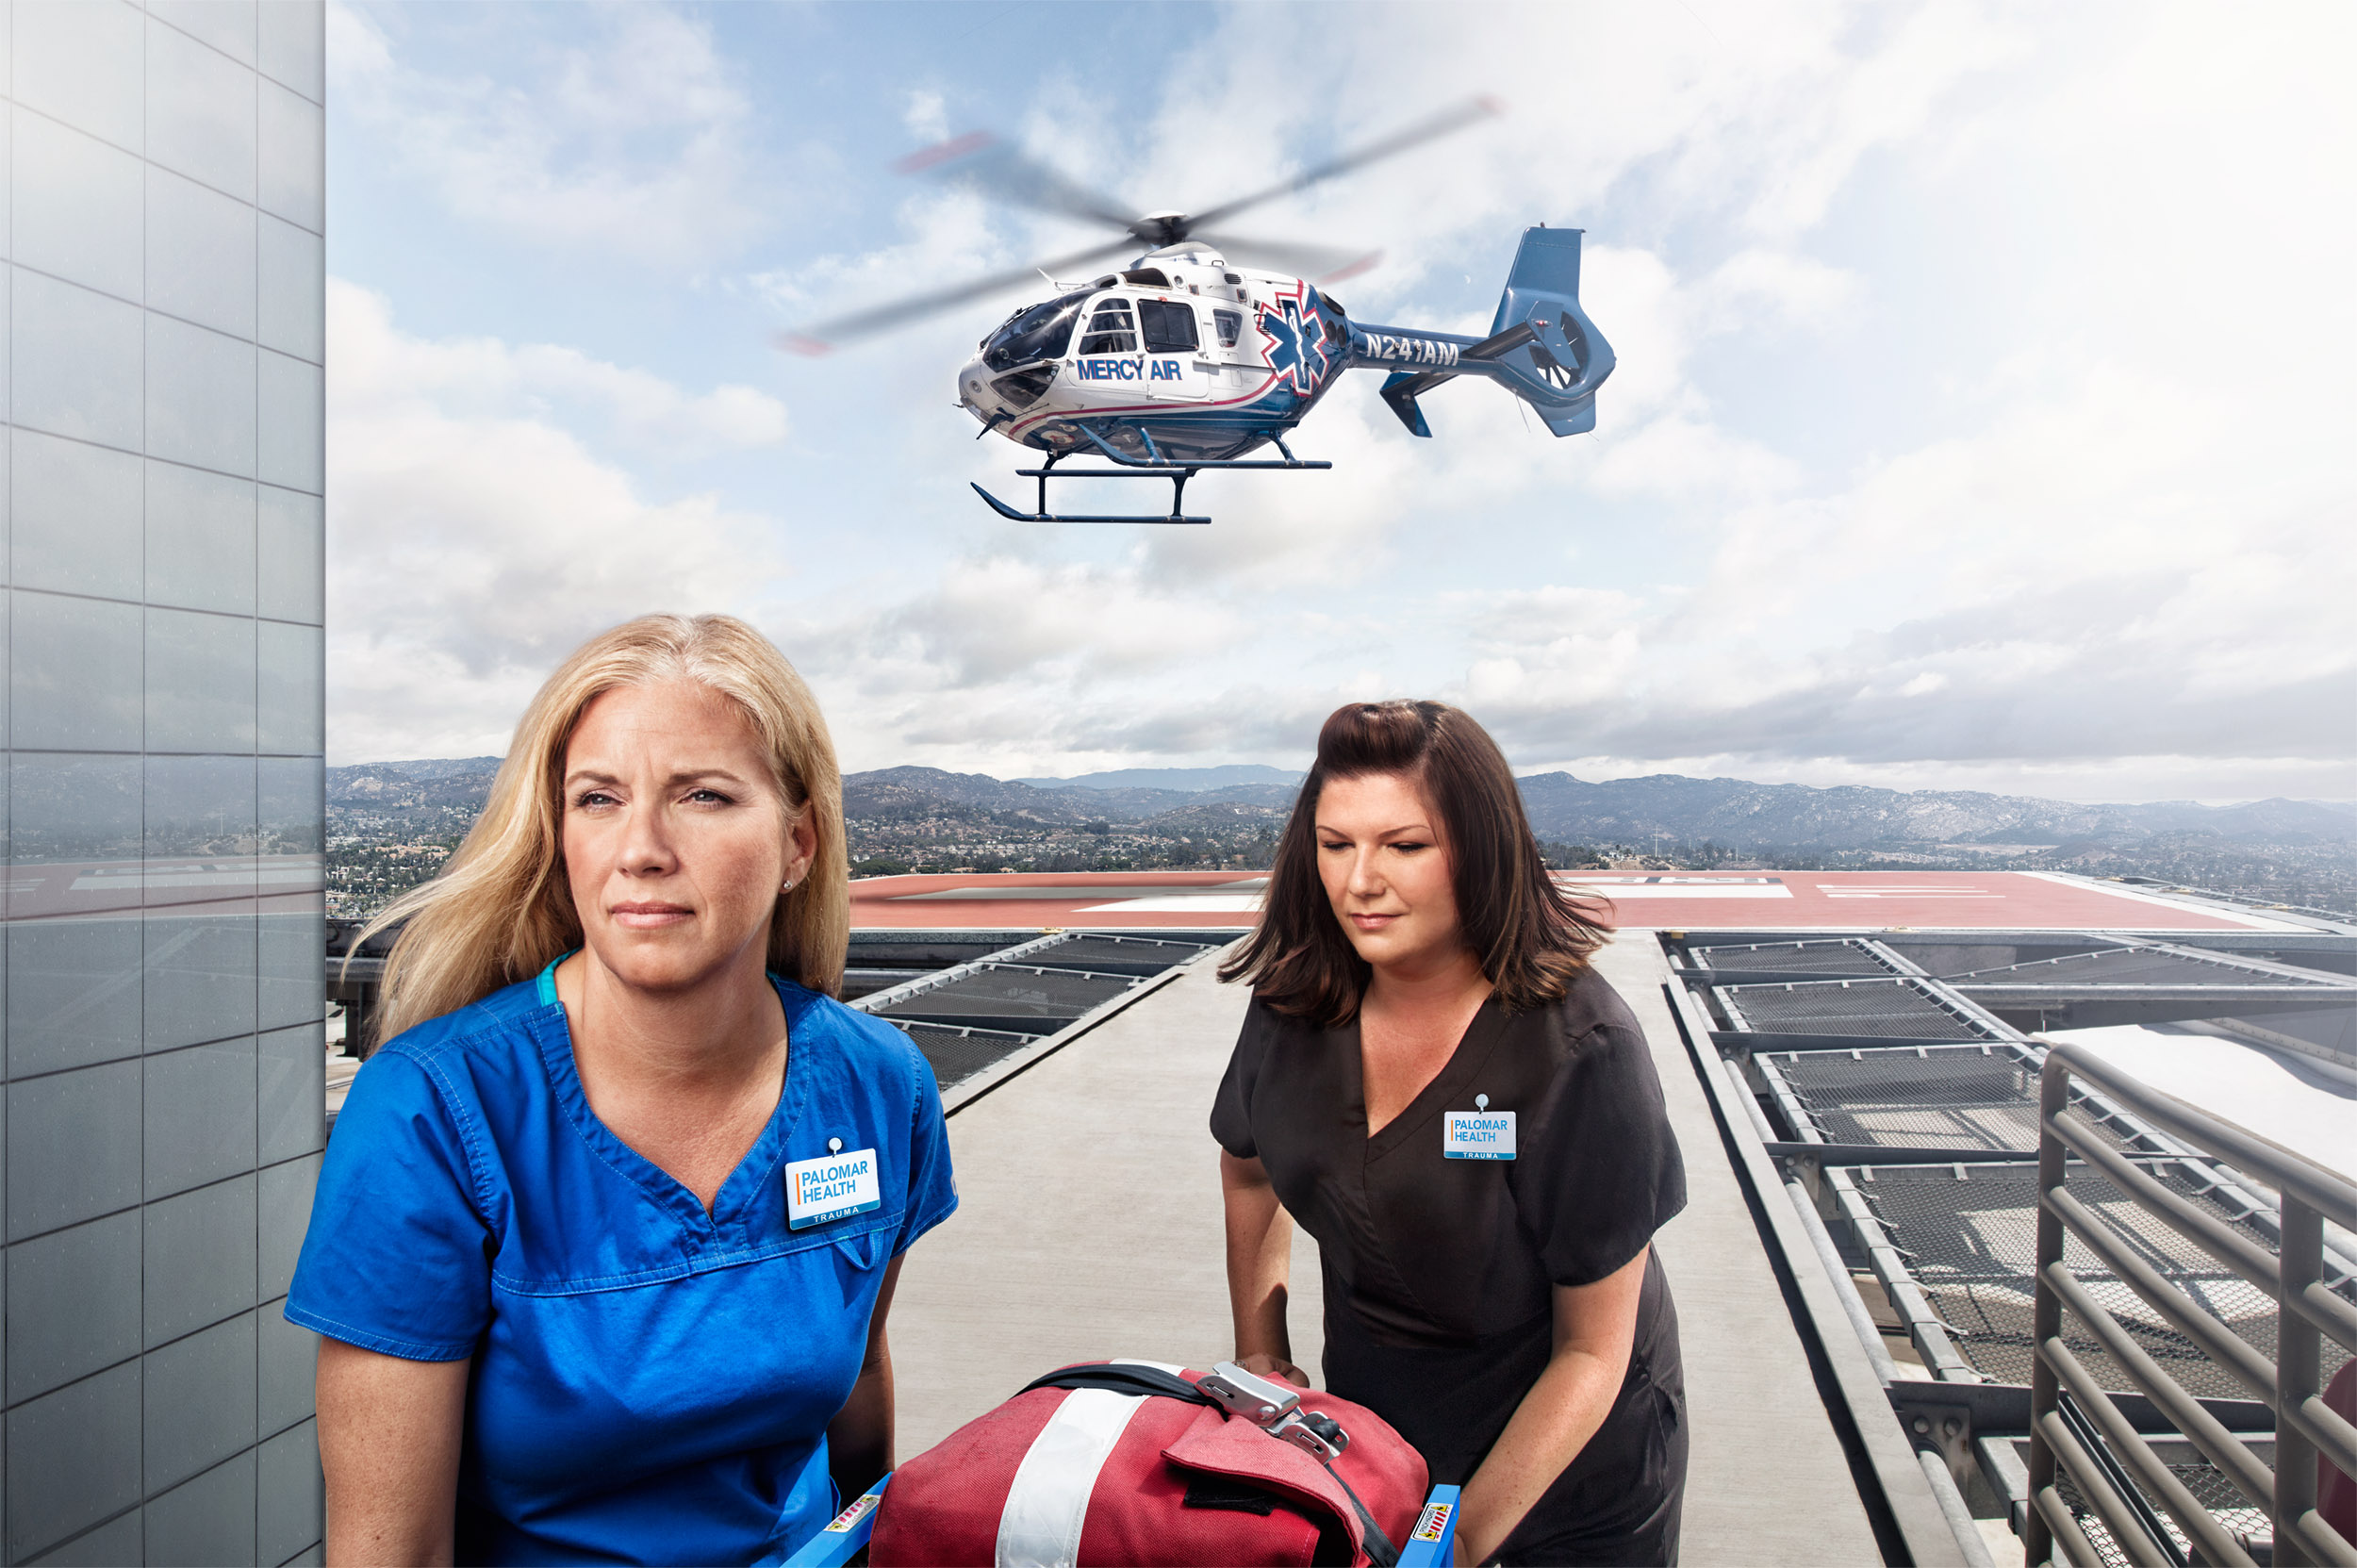 26_healthcare_medevac_hospital_insurance_commercial_photographer.jpg